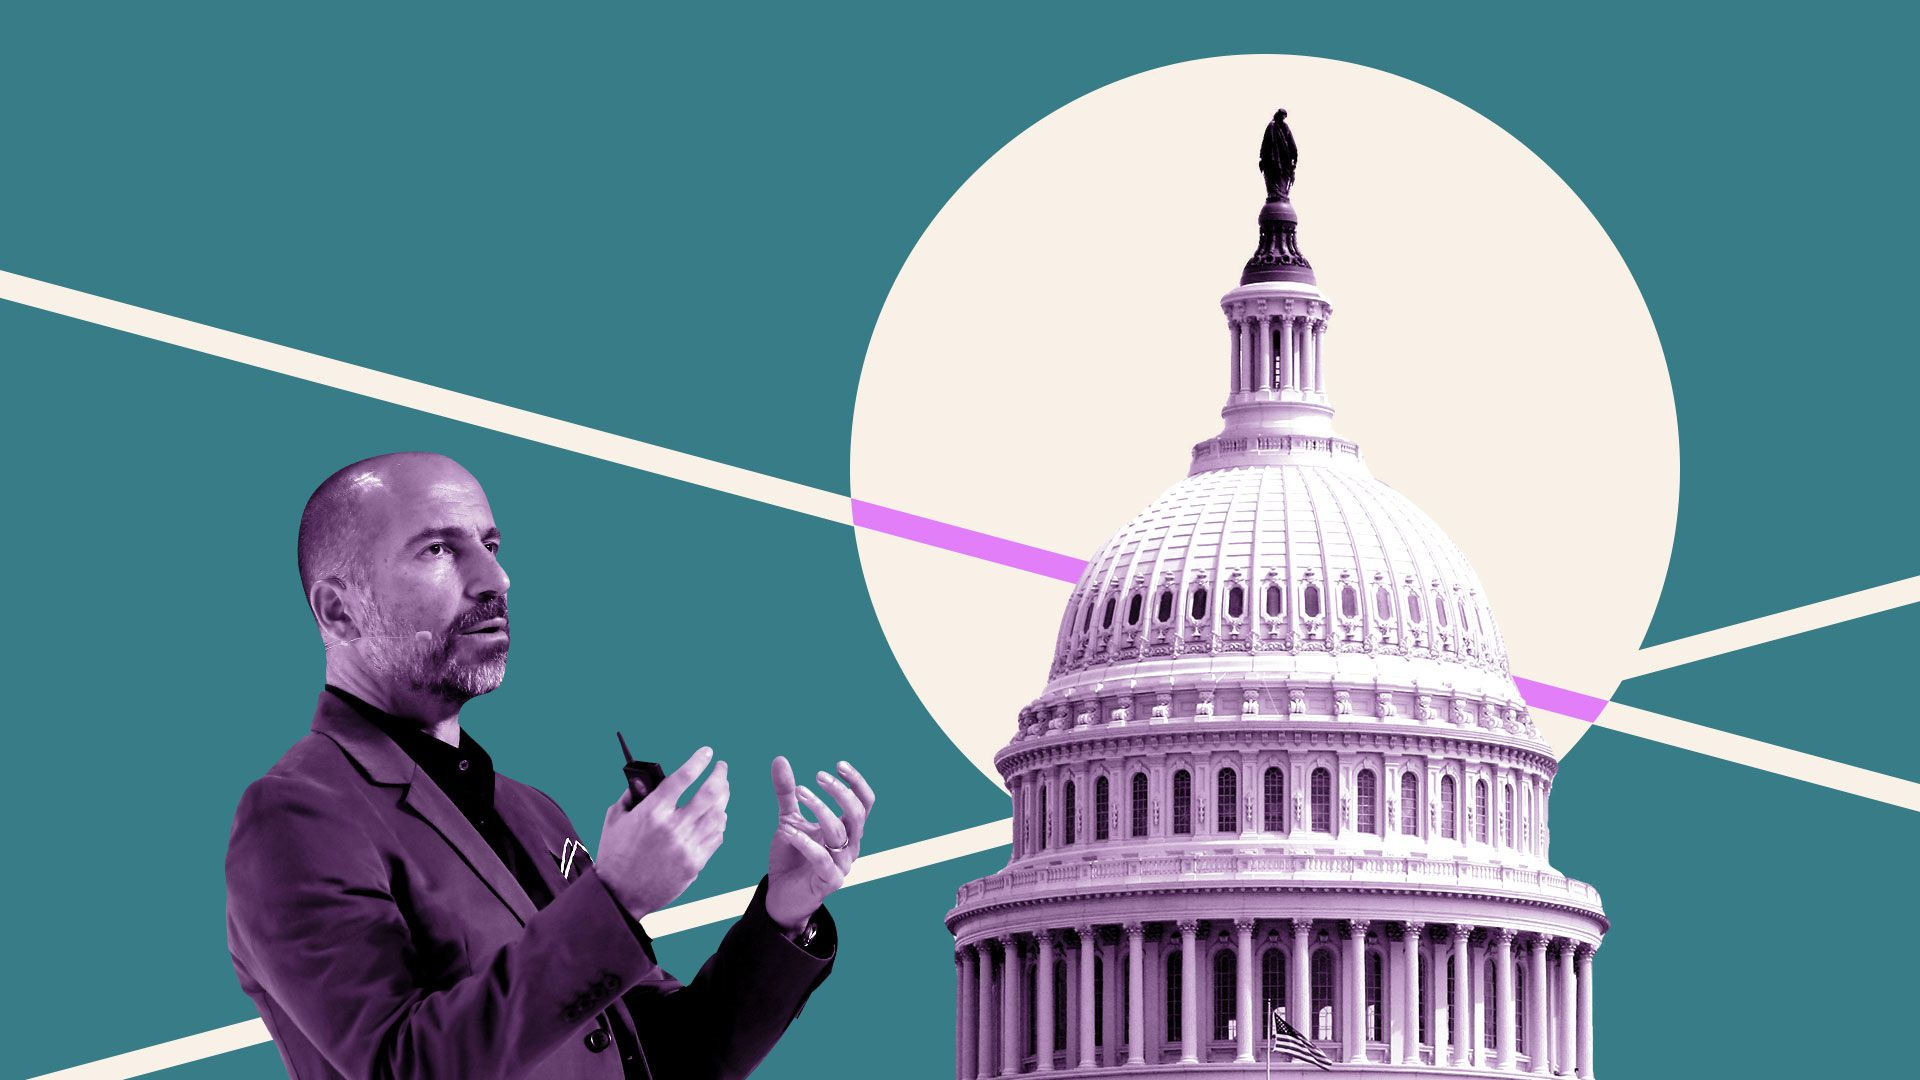 Photo illustration of Uber CEO Dara Khosrowshahi and the Capitol building.